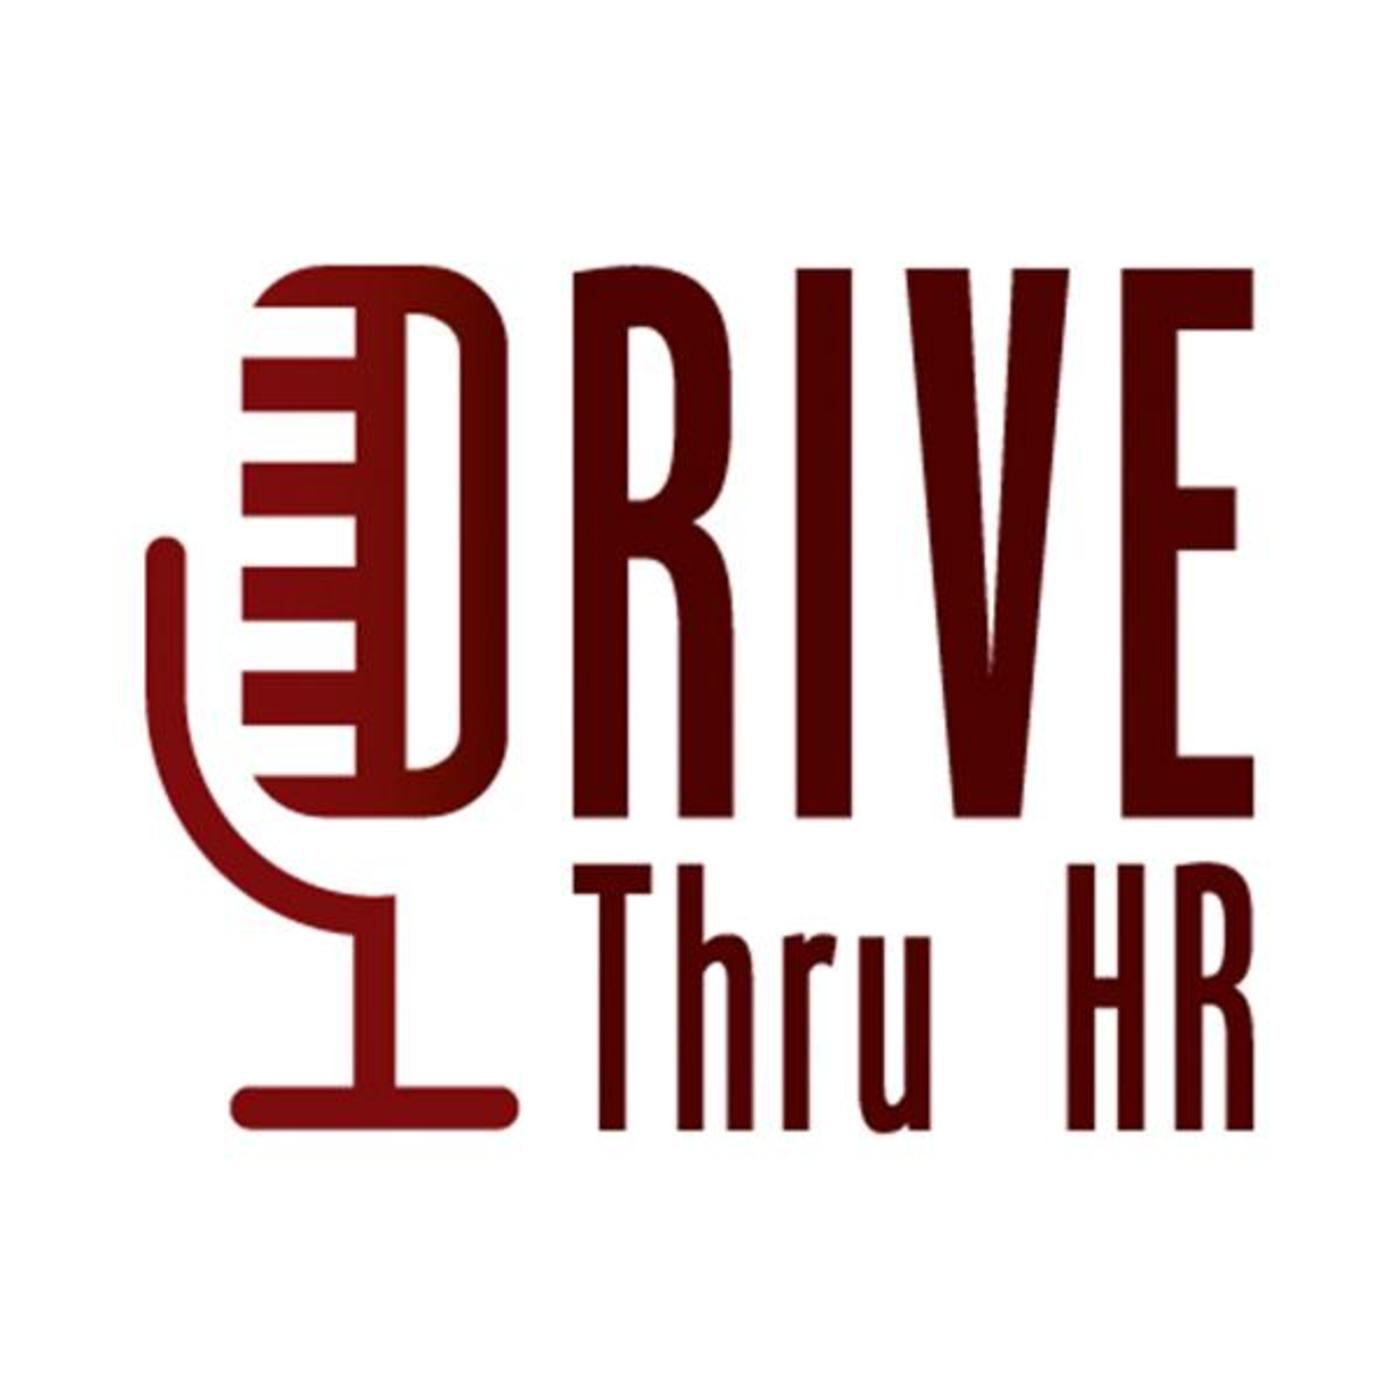 Drive Thru HR #CoolTools Episode: How Technology Can Help You Manage Employee Relations Issues